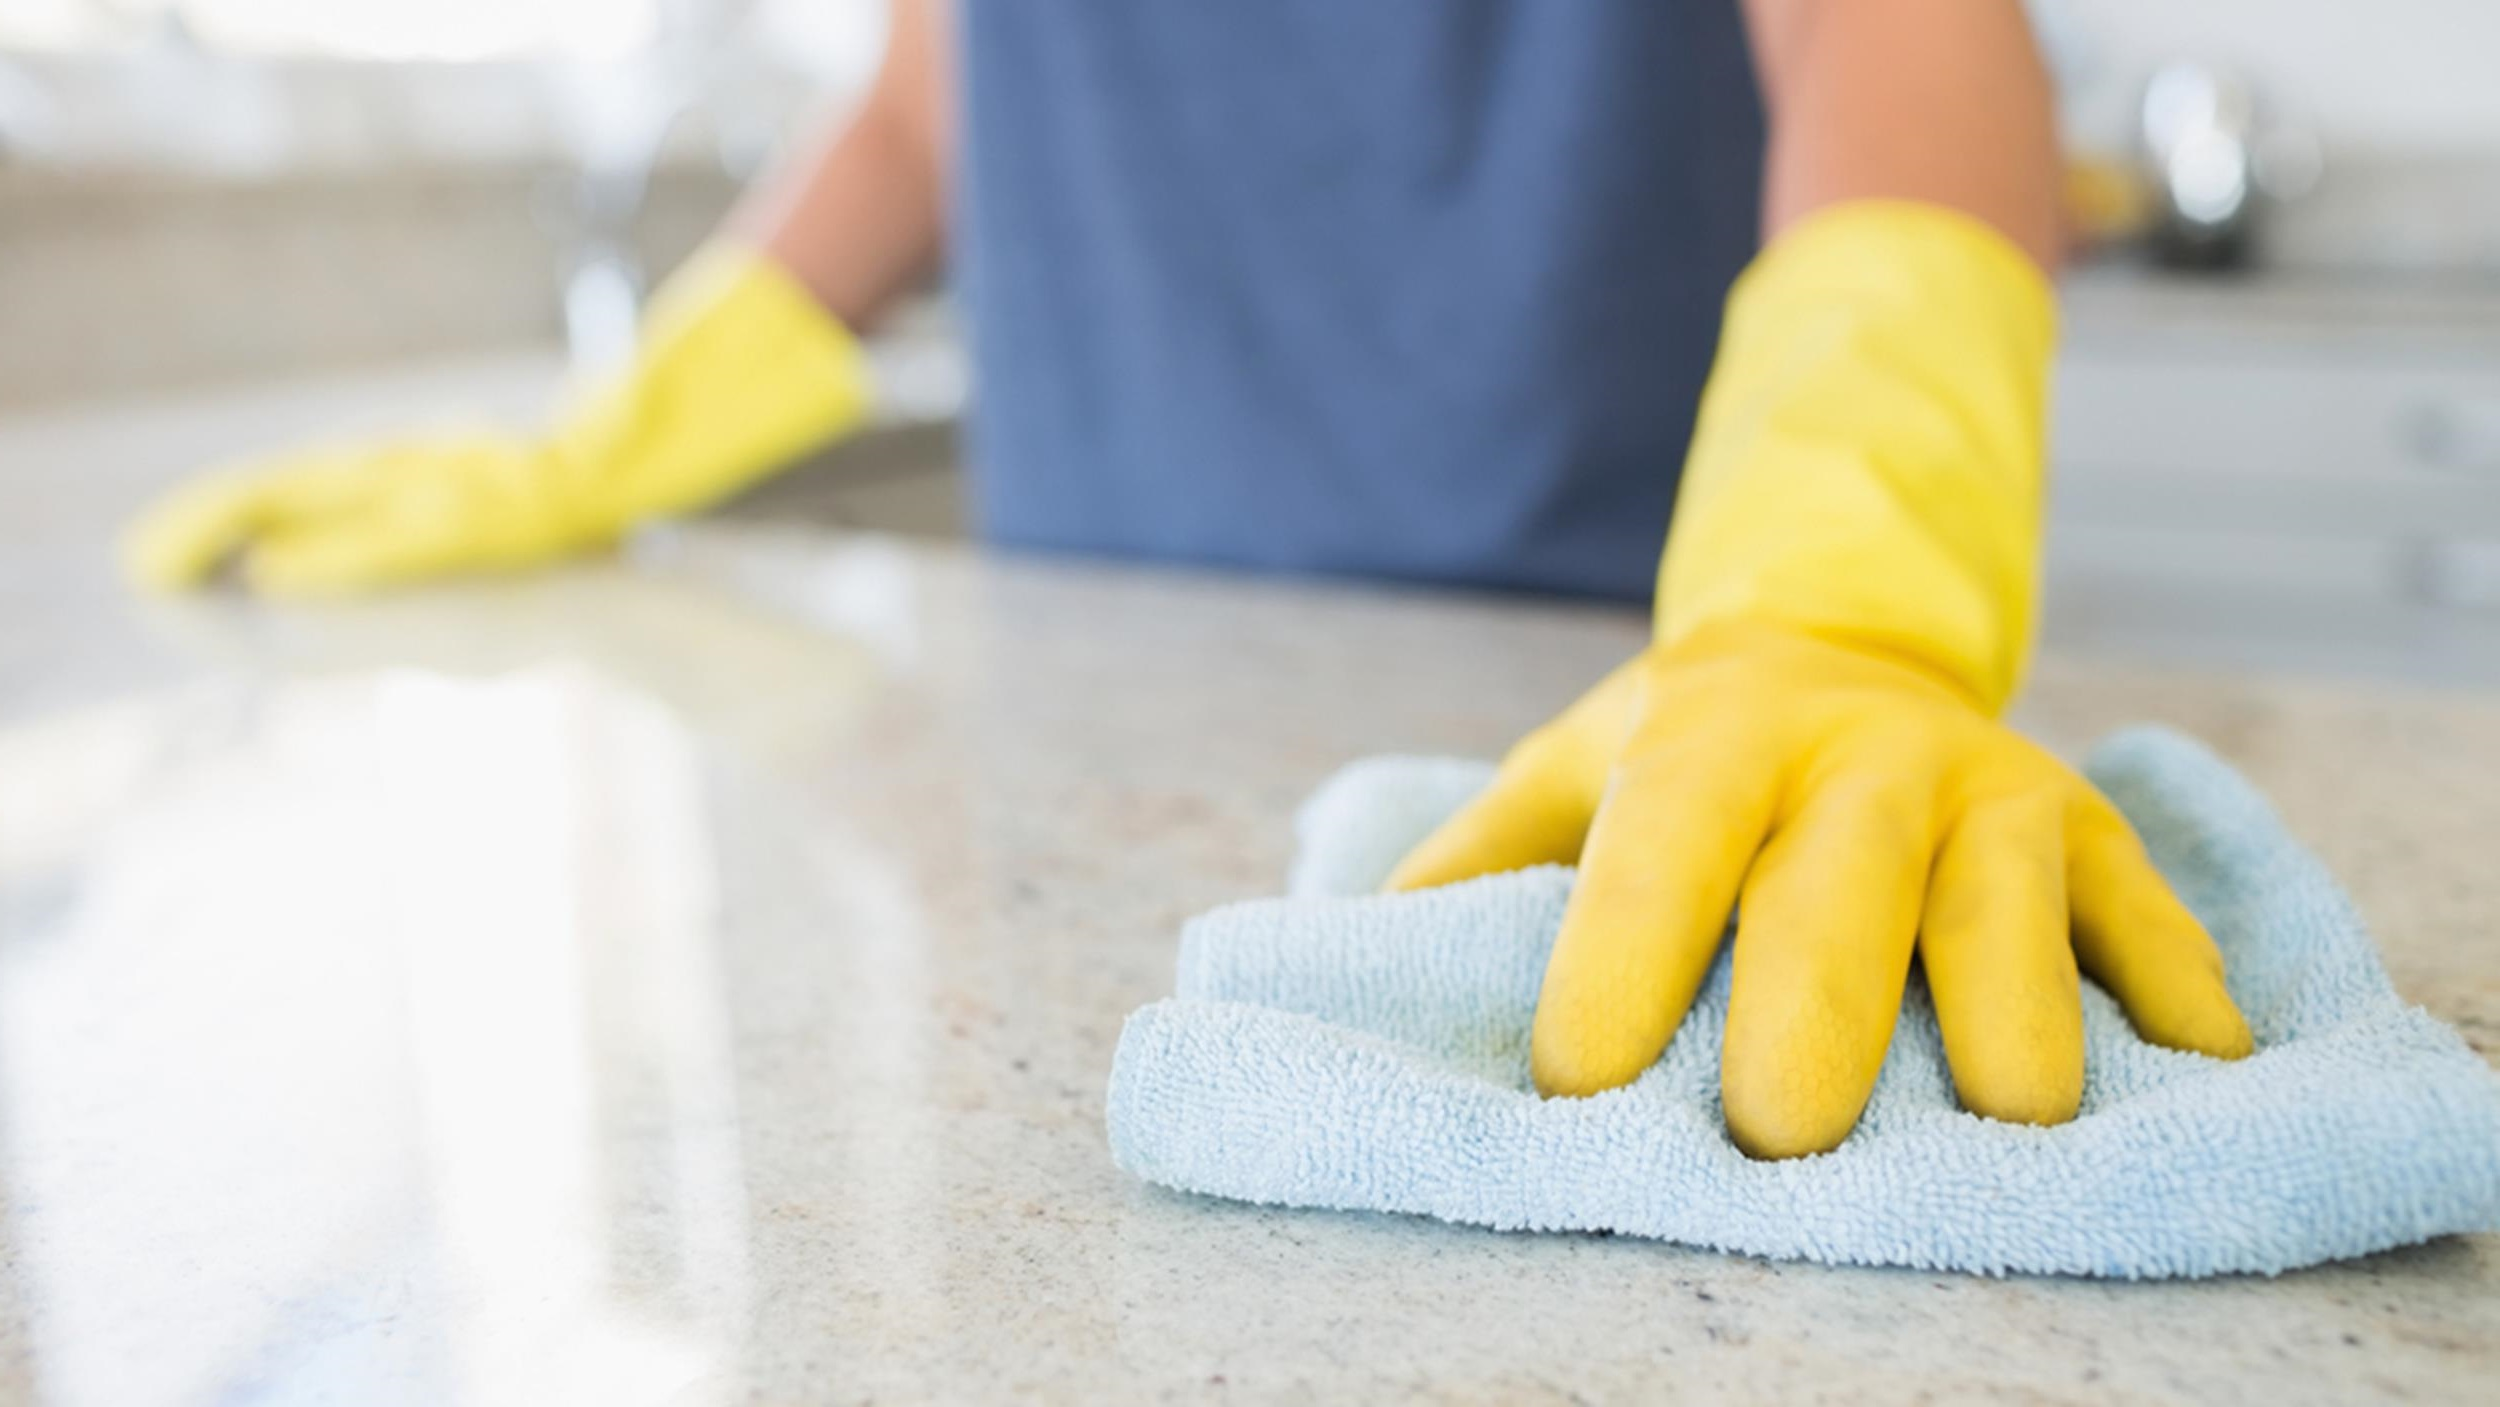 Kitchen Countertop Cleaning